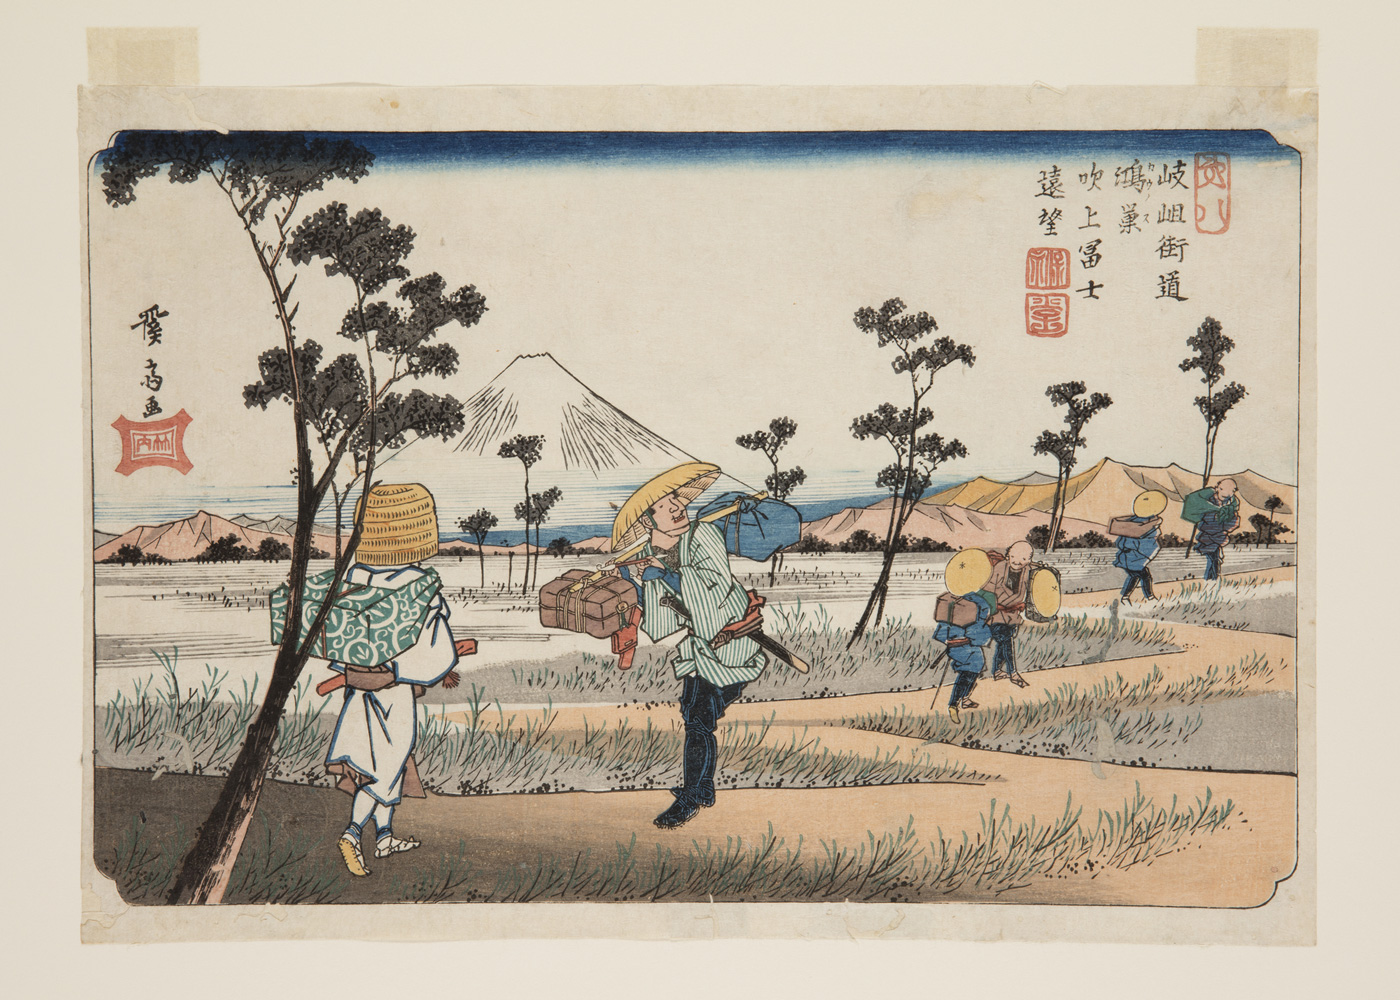 Japanese print of a landscape. A path weaves through fields, mountains in the background. Travelers, dressed in traditional clothes carrying bundles, walk along the path.